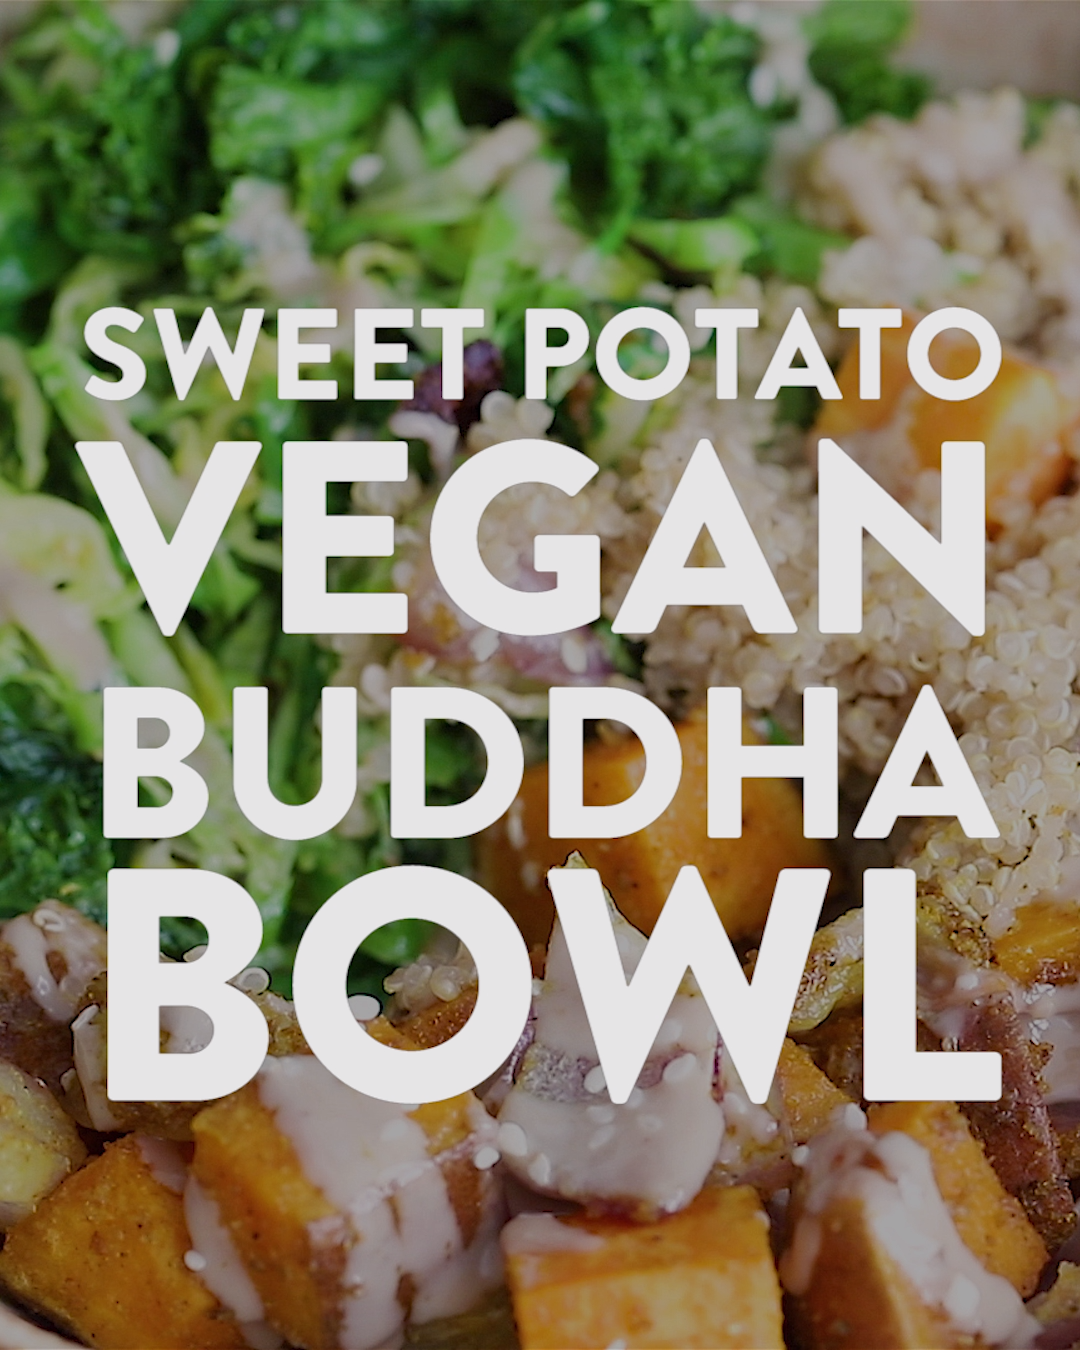 Sweet Potato Vegan Buddha Bowl images